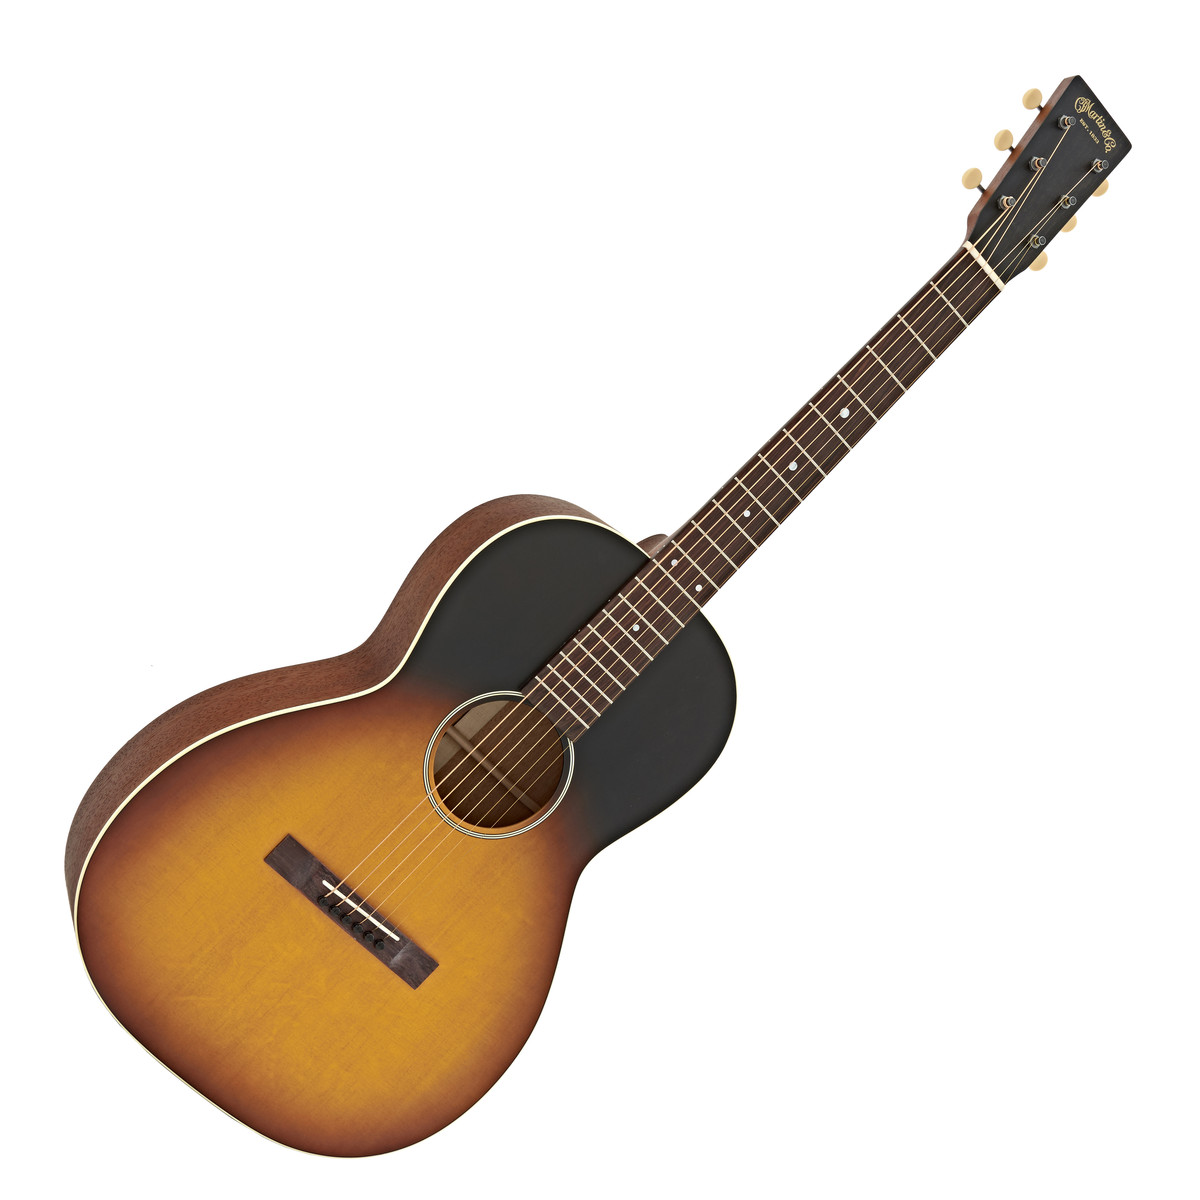 Martin 00 17s Acoustic Guitar Whiskey Sunset